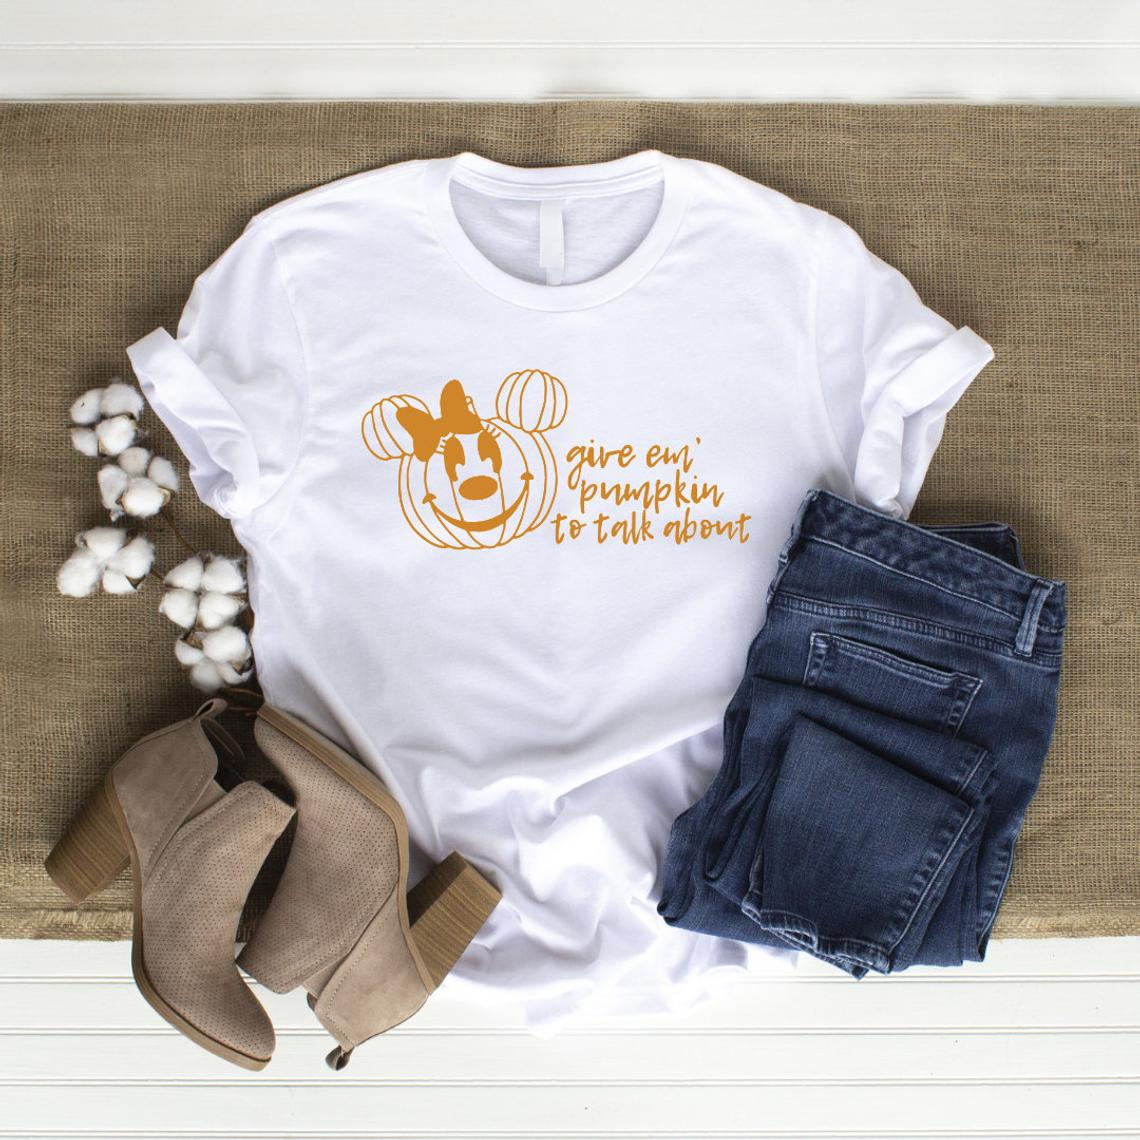 Disney Halloween Shirts For Kids.Top 10 Must Have Disney Halloween Shirts Karma Kismet